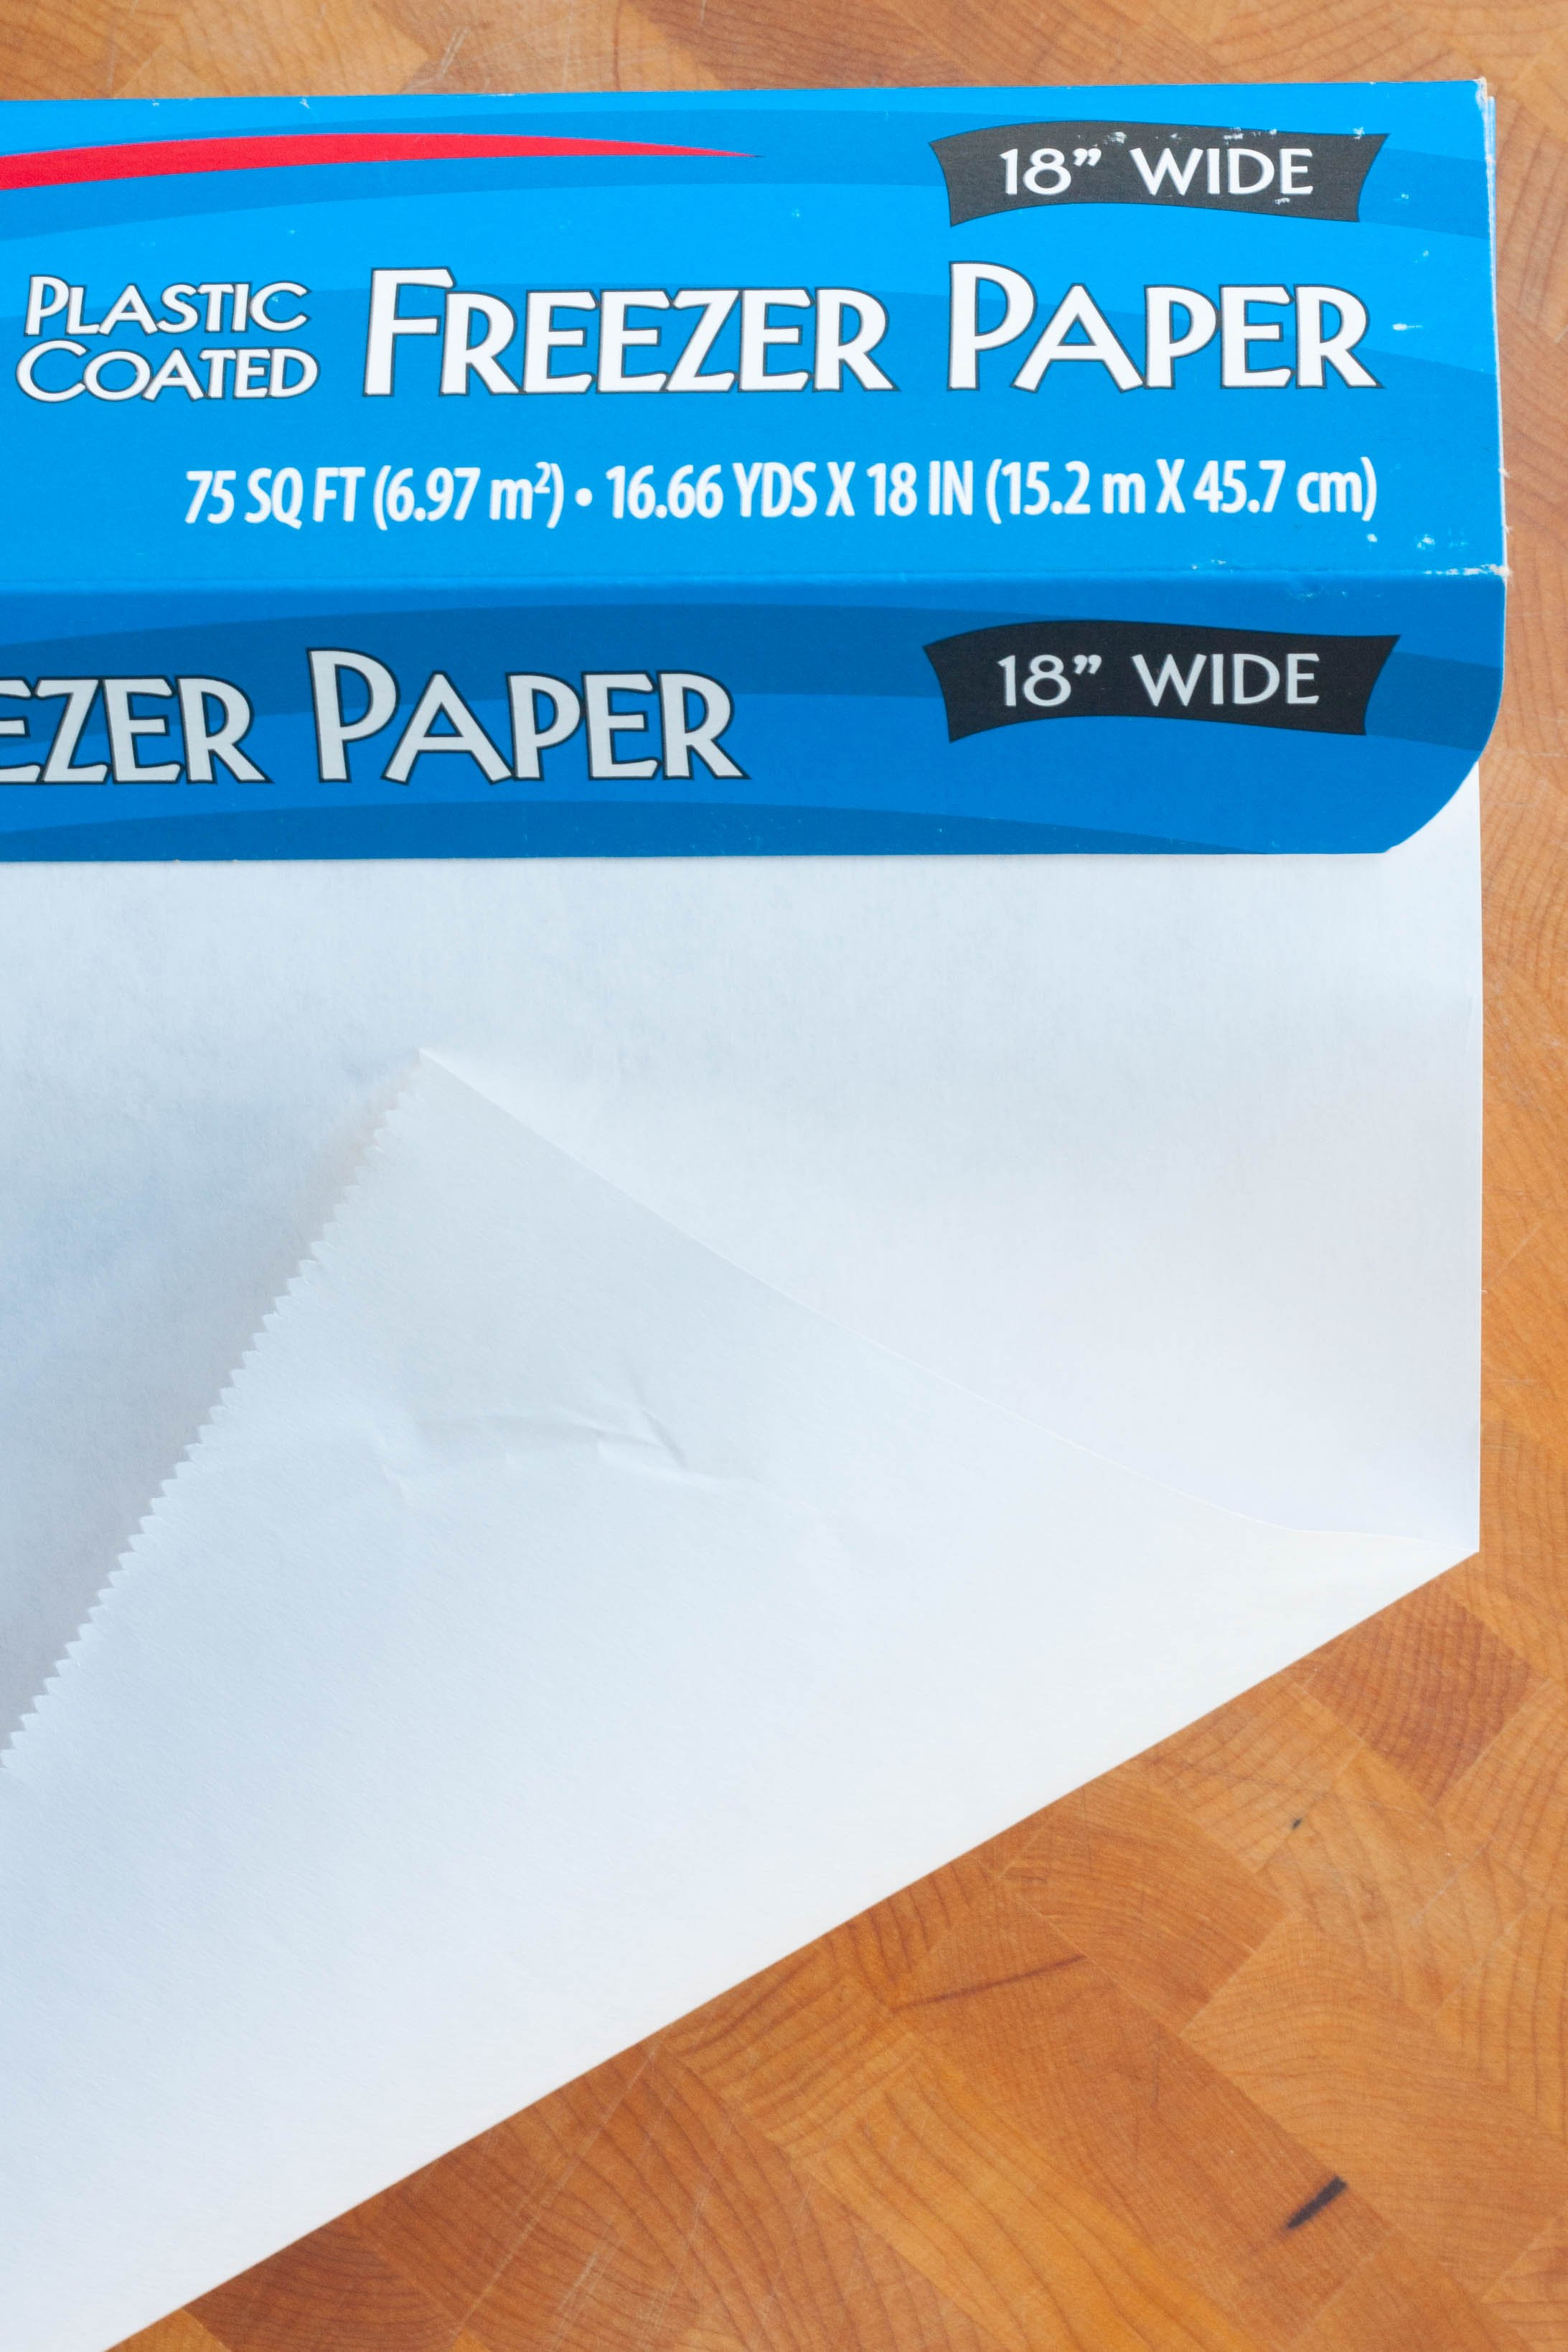 What Is Freezer Paper, and How Is It Different from Wax Paper